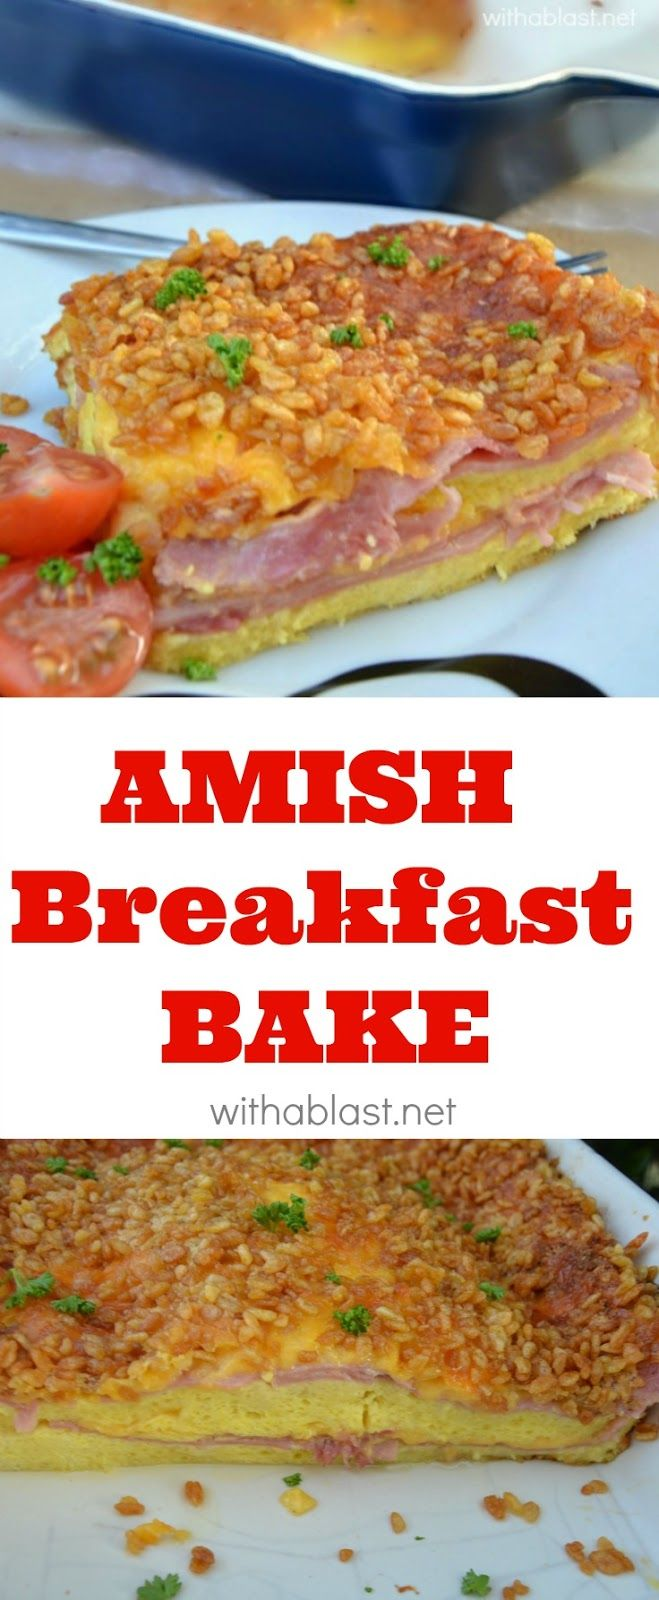 Layers of bread, ham, cheese and an egg mixture results in this fluffy omelette…